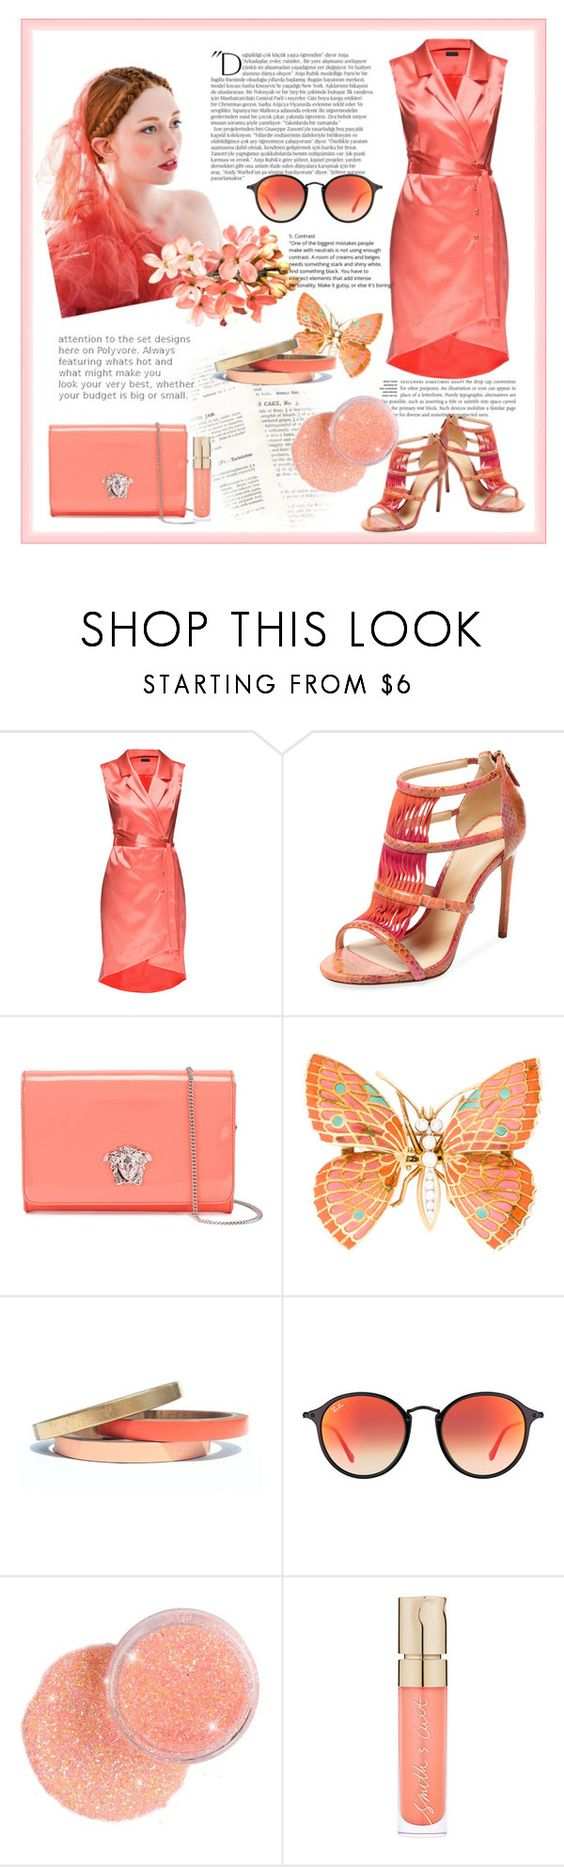 """i ❤ peach"" by ximenita ❤ liked on Polyvore featuring Alexandre Birman, Versace, Voz Collective, Balmain, Ray-Ban and Smith & Cult"